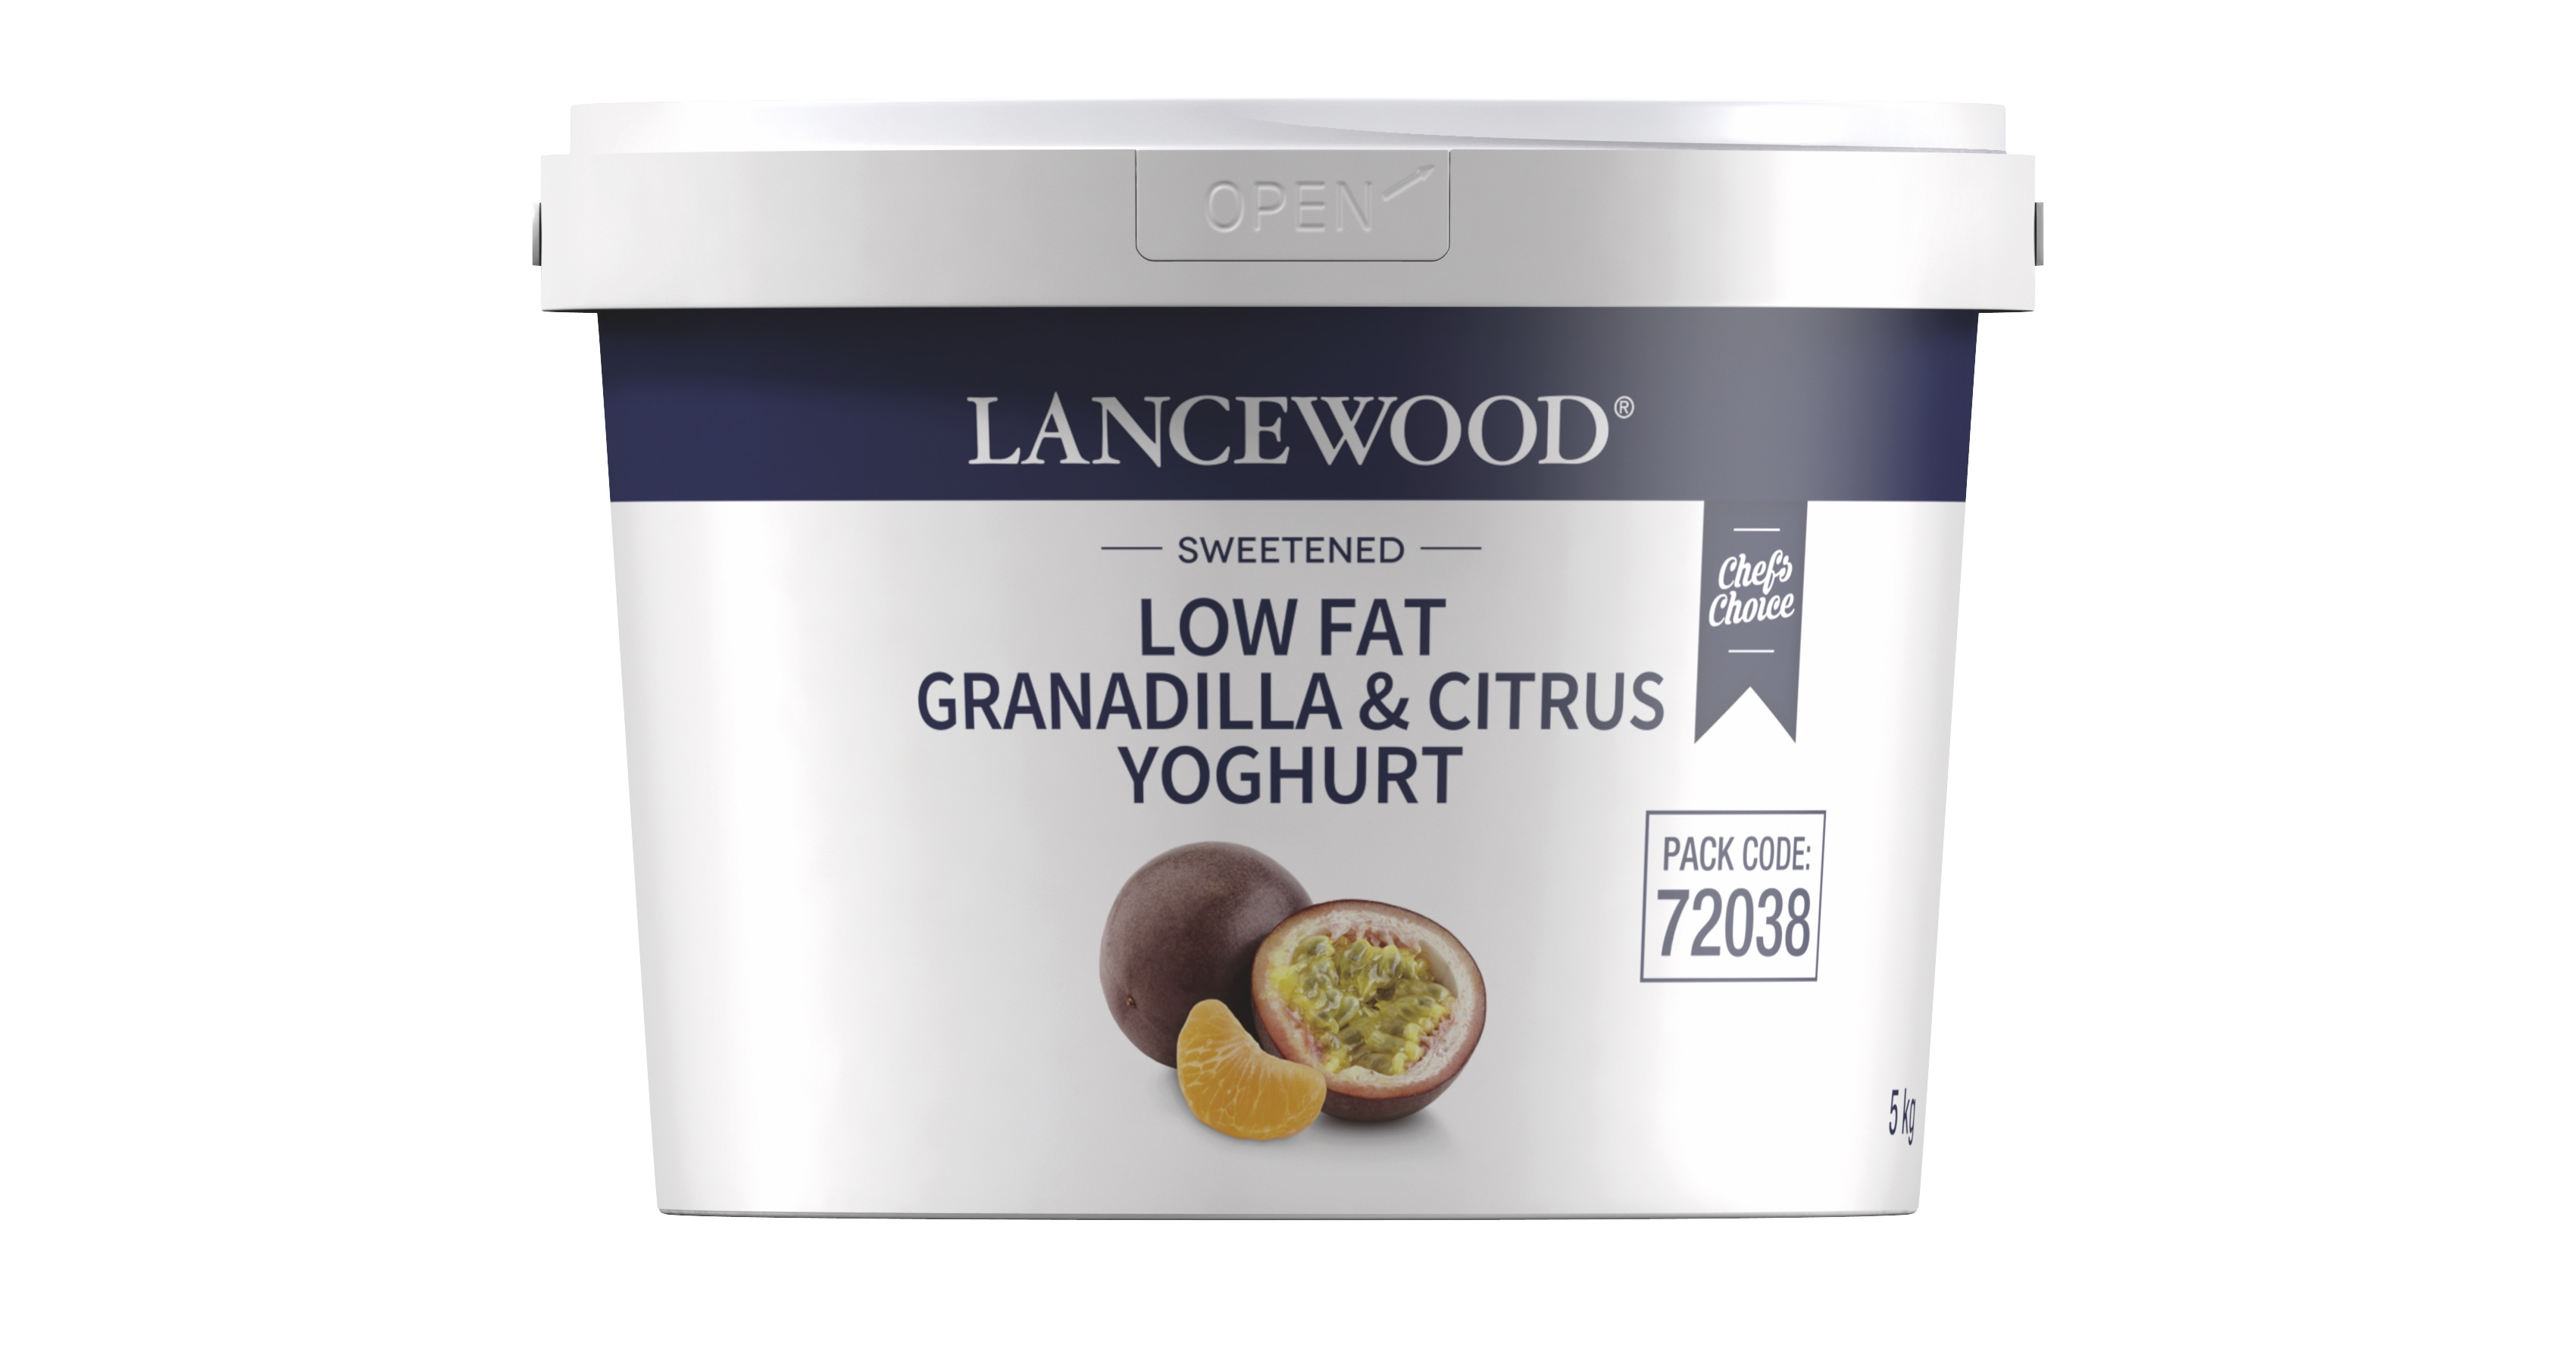 Low Fat Granadilla & Citrus Yoghurt